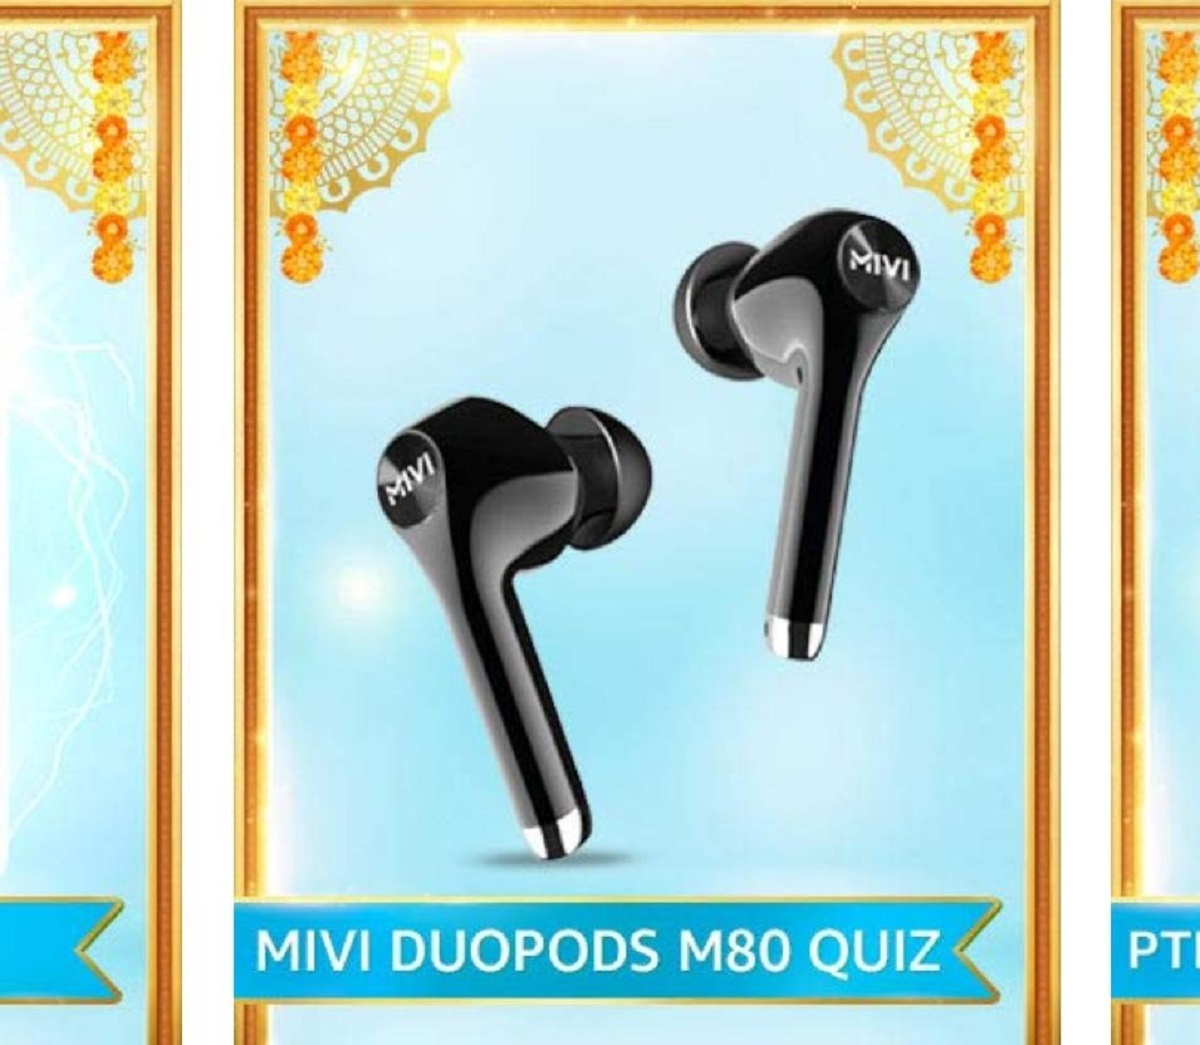 Amazon MIVI Duopods M80 Quiz Answers